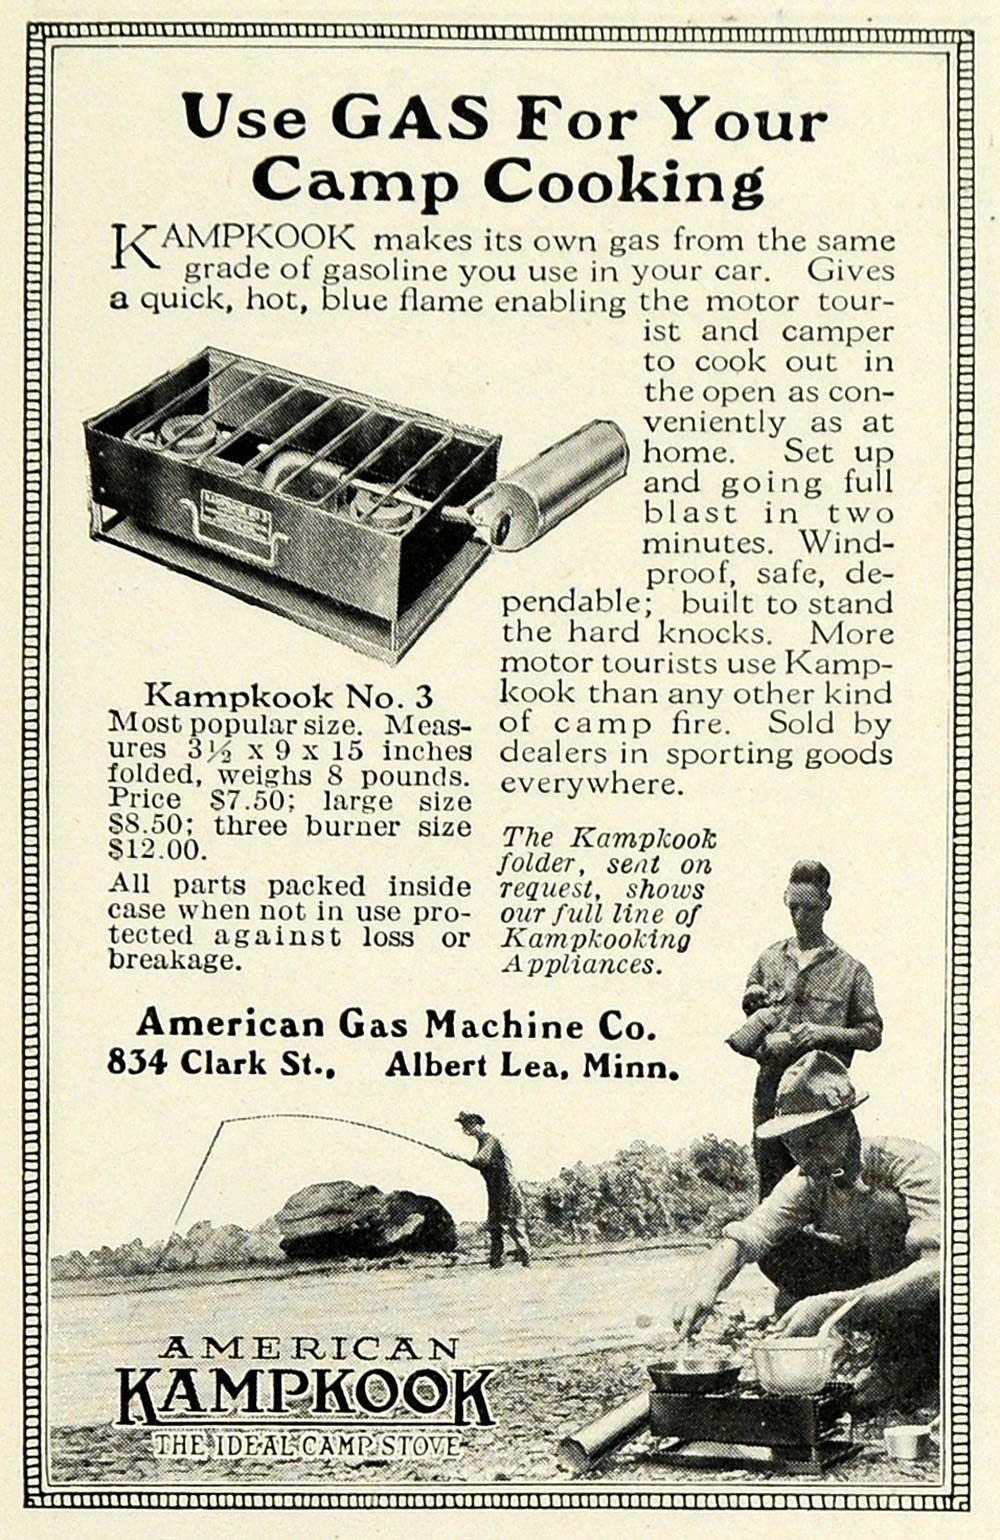 1922 Ad American Gas Machine Kampkook Camp Stove Range Camping Cooking NGM1